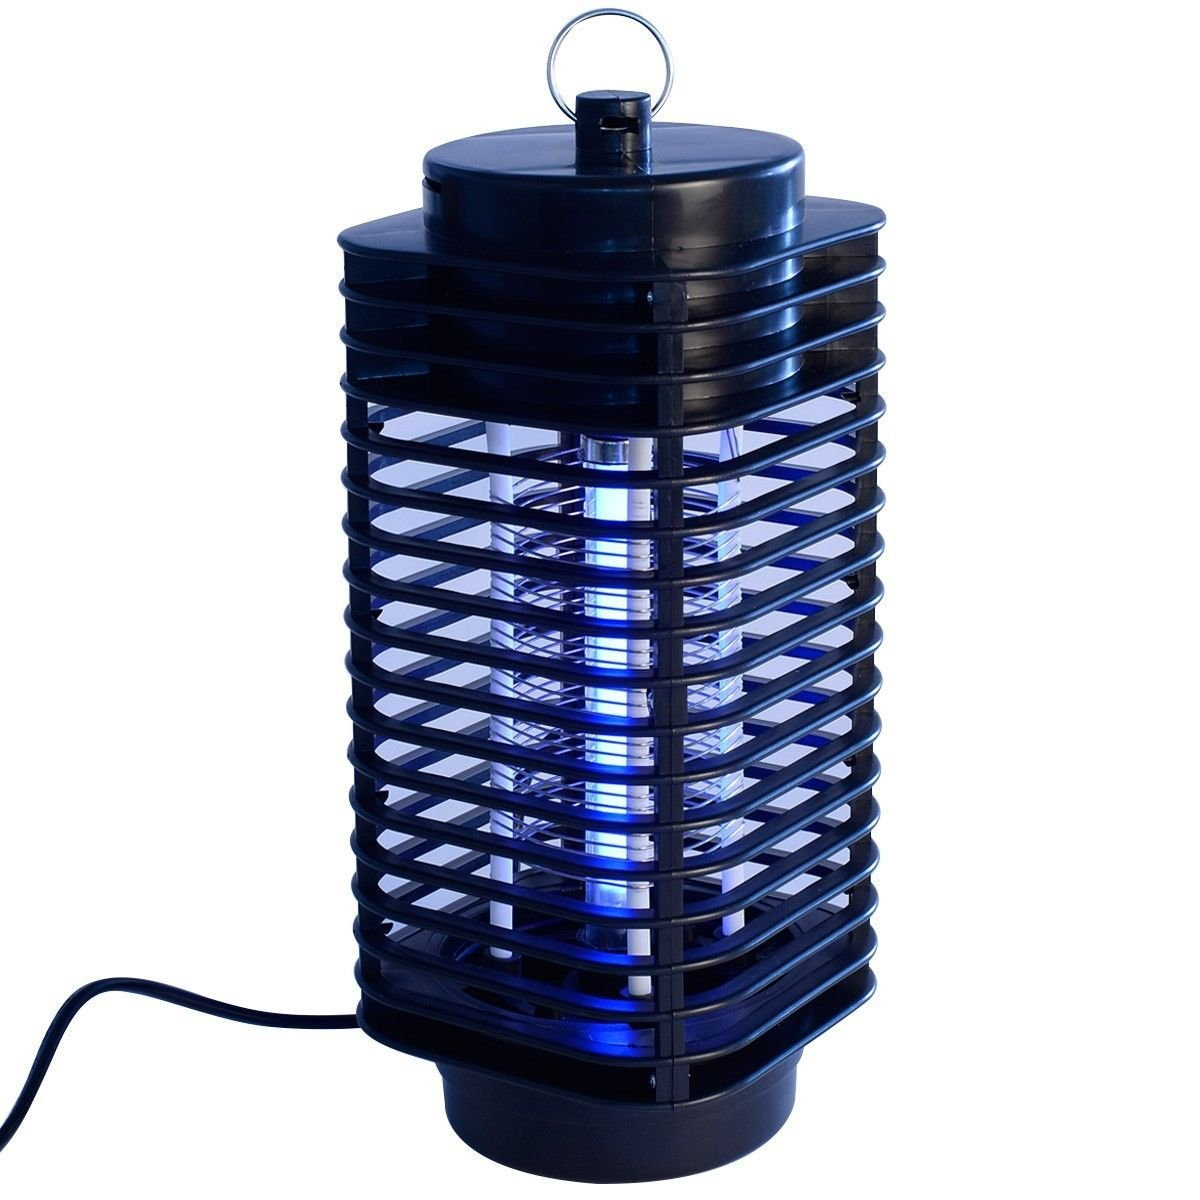 Amazon.com : Electronic Zapper Insect Killer Electric Mosquito Fly ...